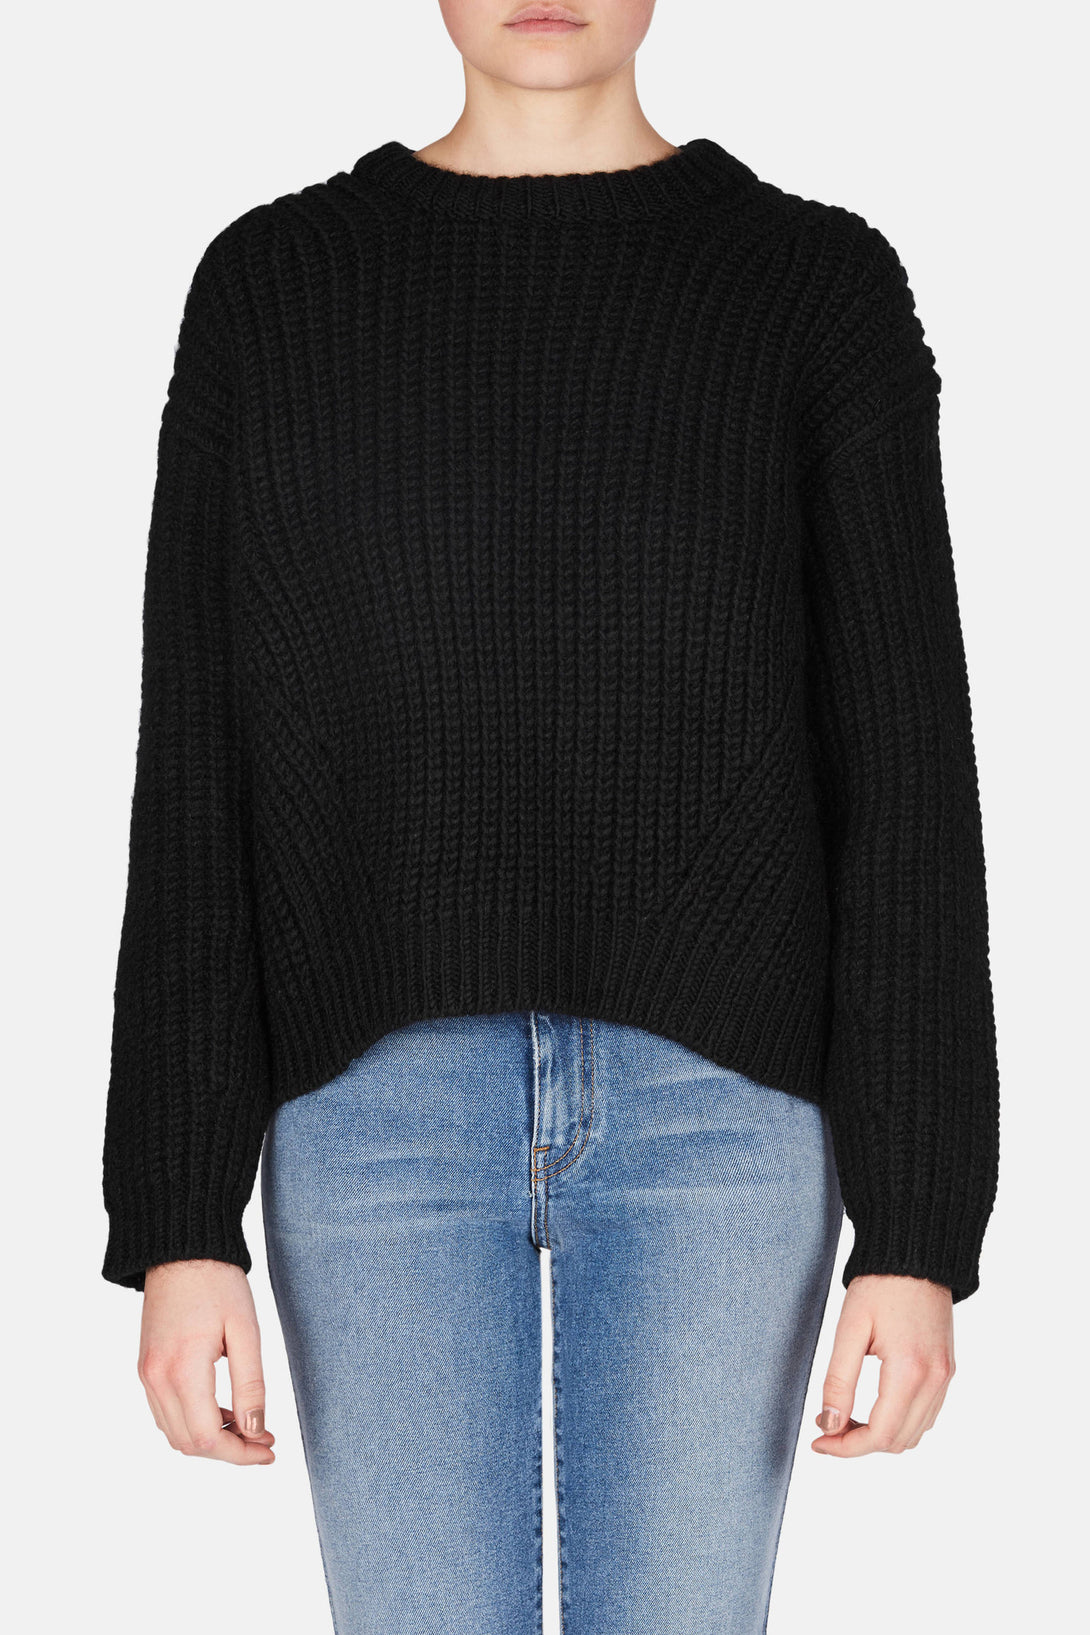 Hira Chunky Sweater - Black